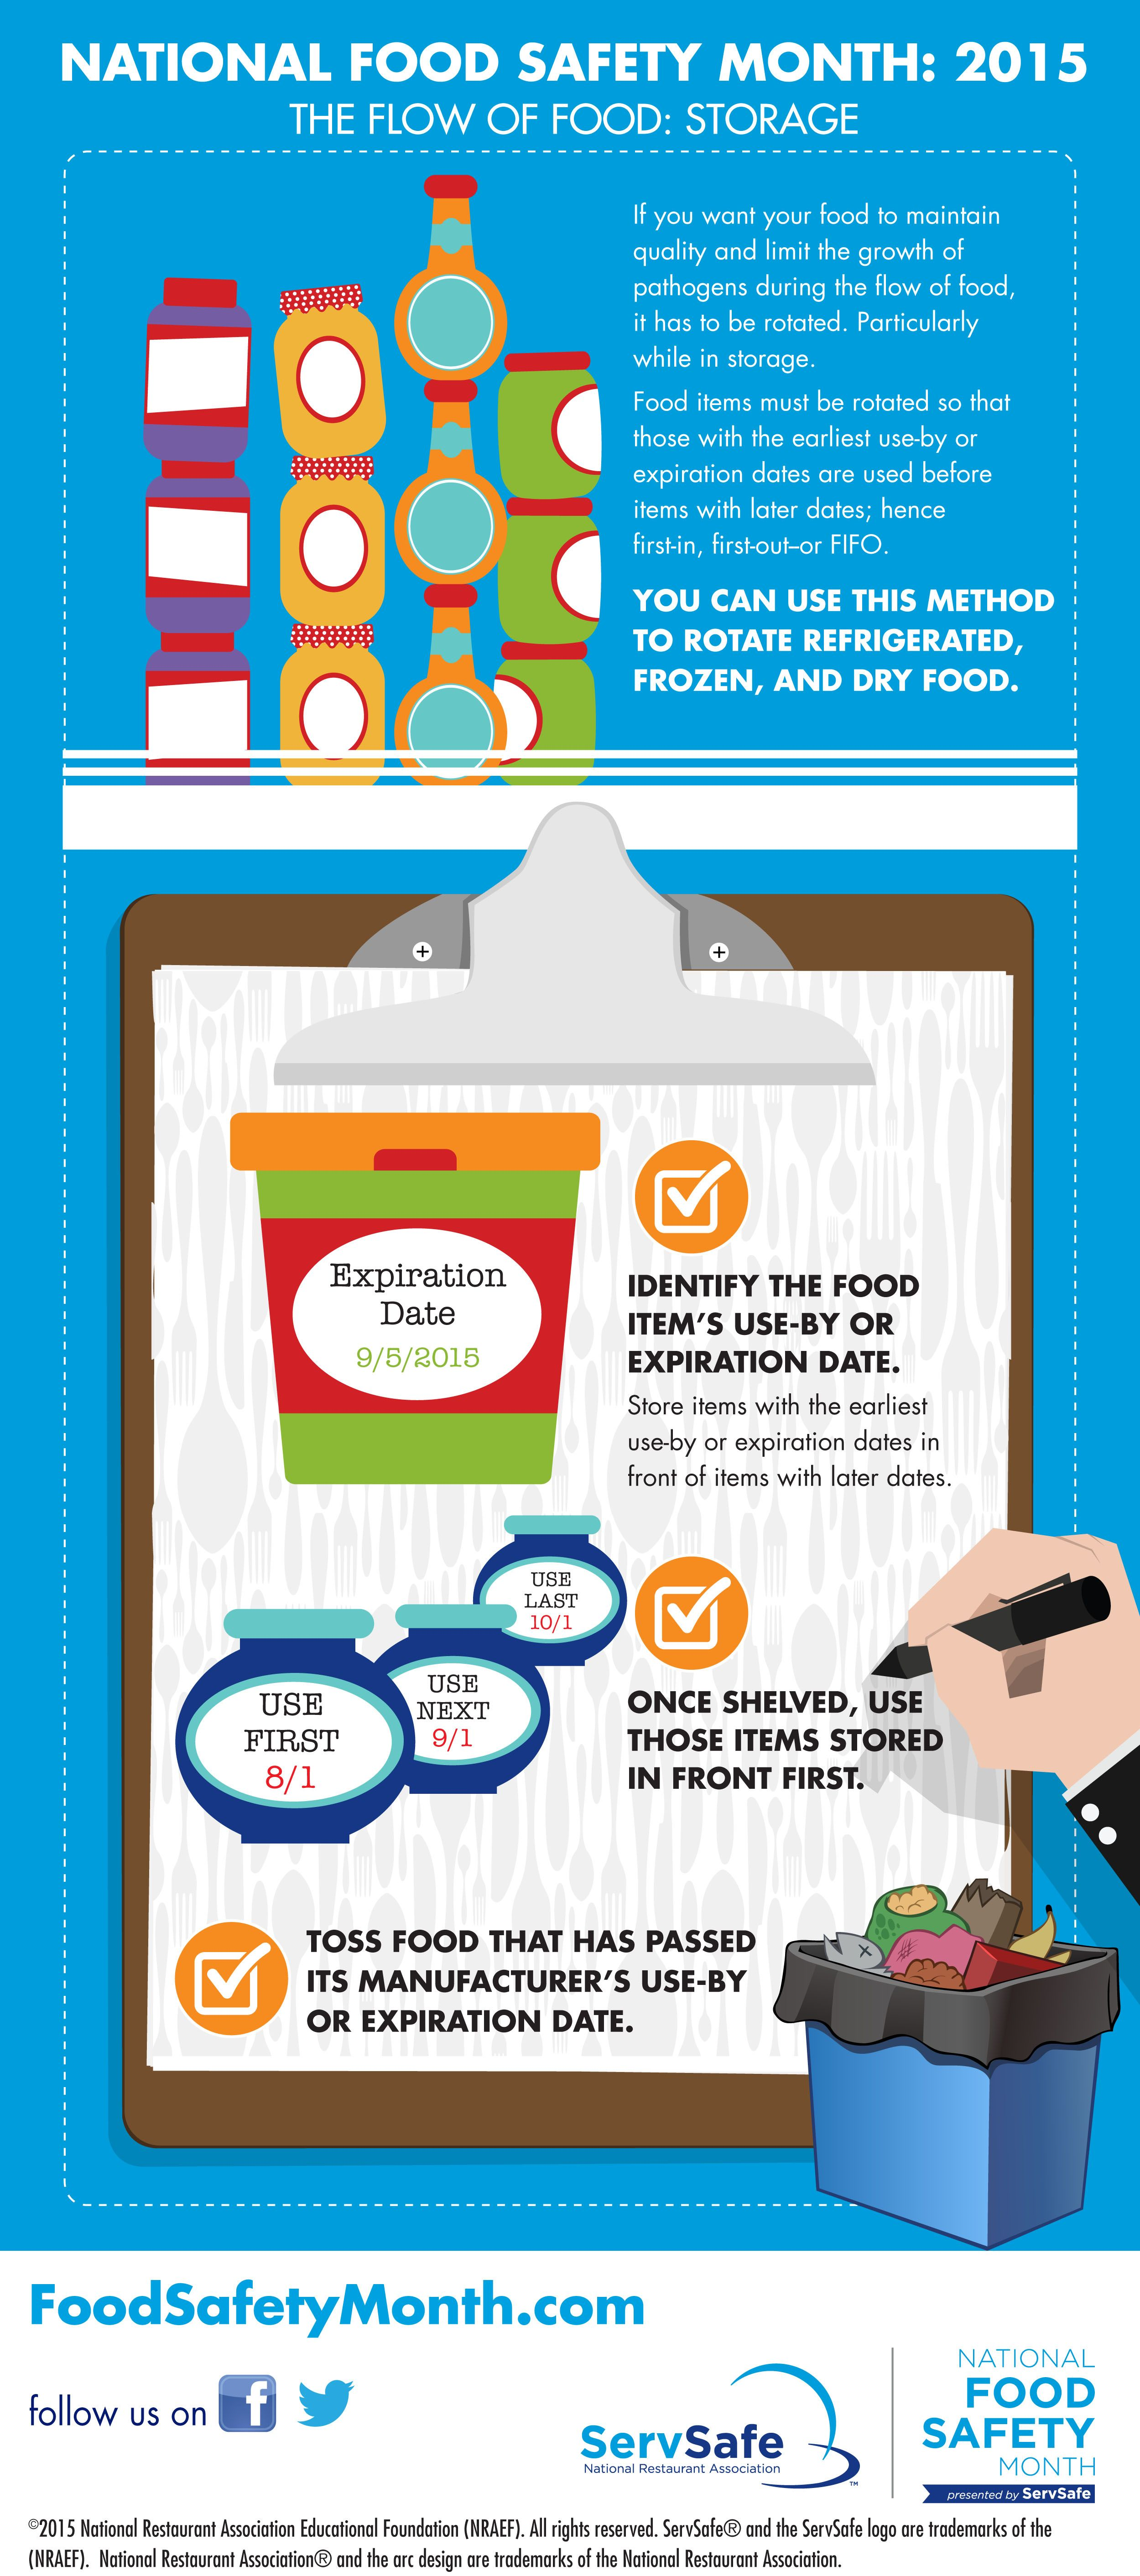 follow food safety education month tips every day safe food is national food safety month 2015 infographic about food storage safety foodsafetymonth letitflow